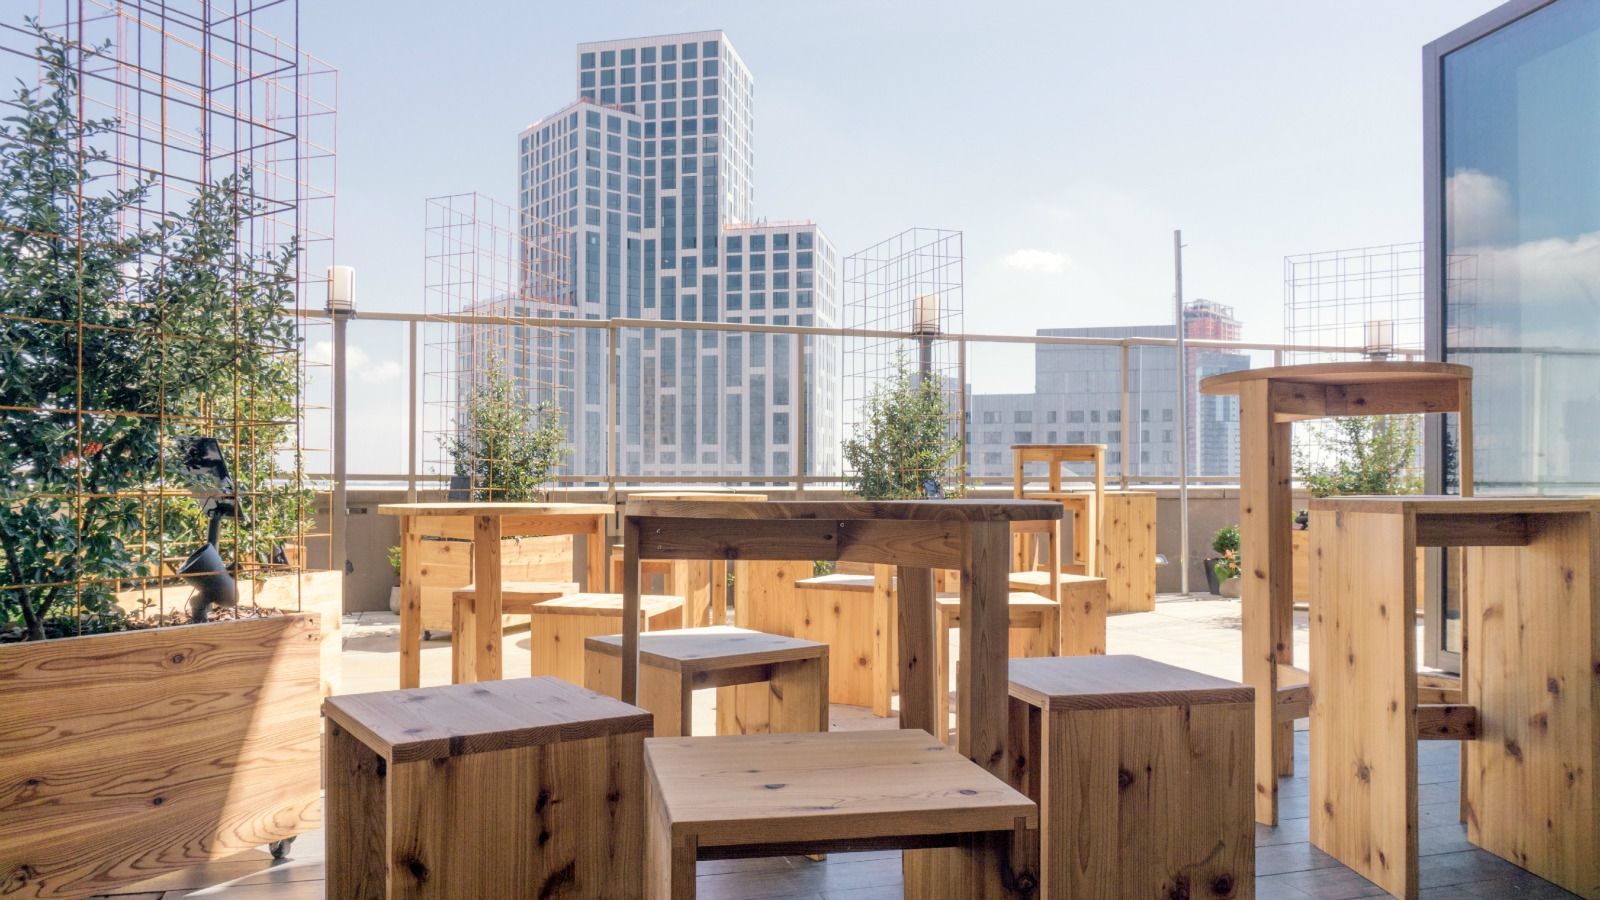 The Best Rooftop Bars With Views At New York City Hotels Curbed Ny